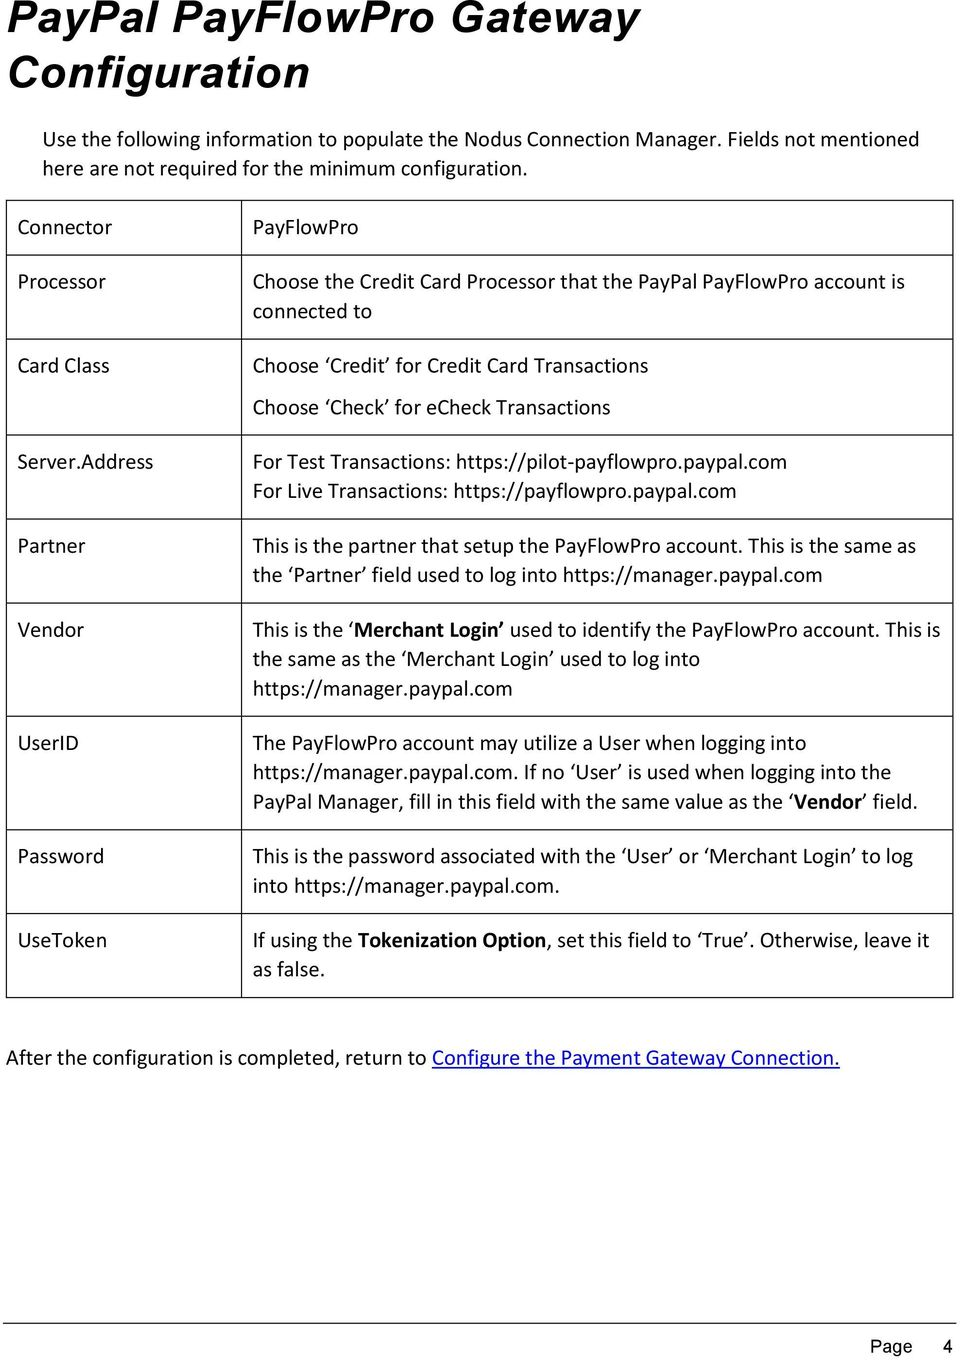 Configuring the Payment Gateway Connection - PDF